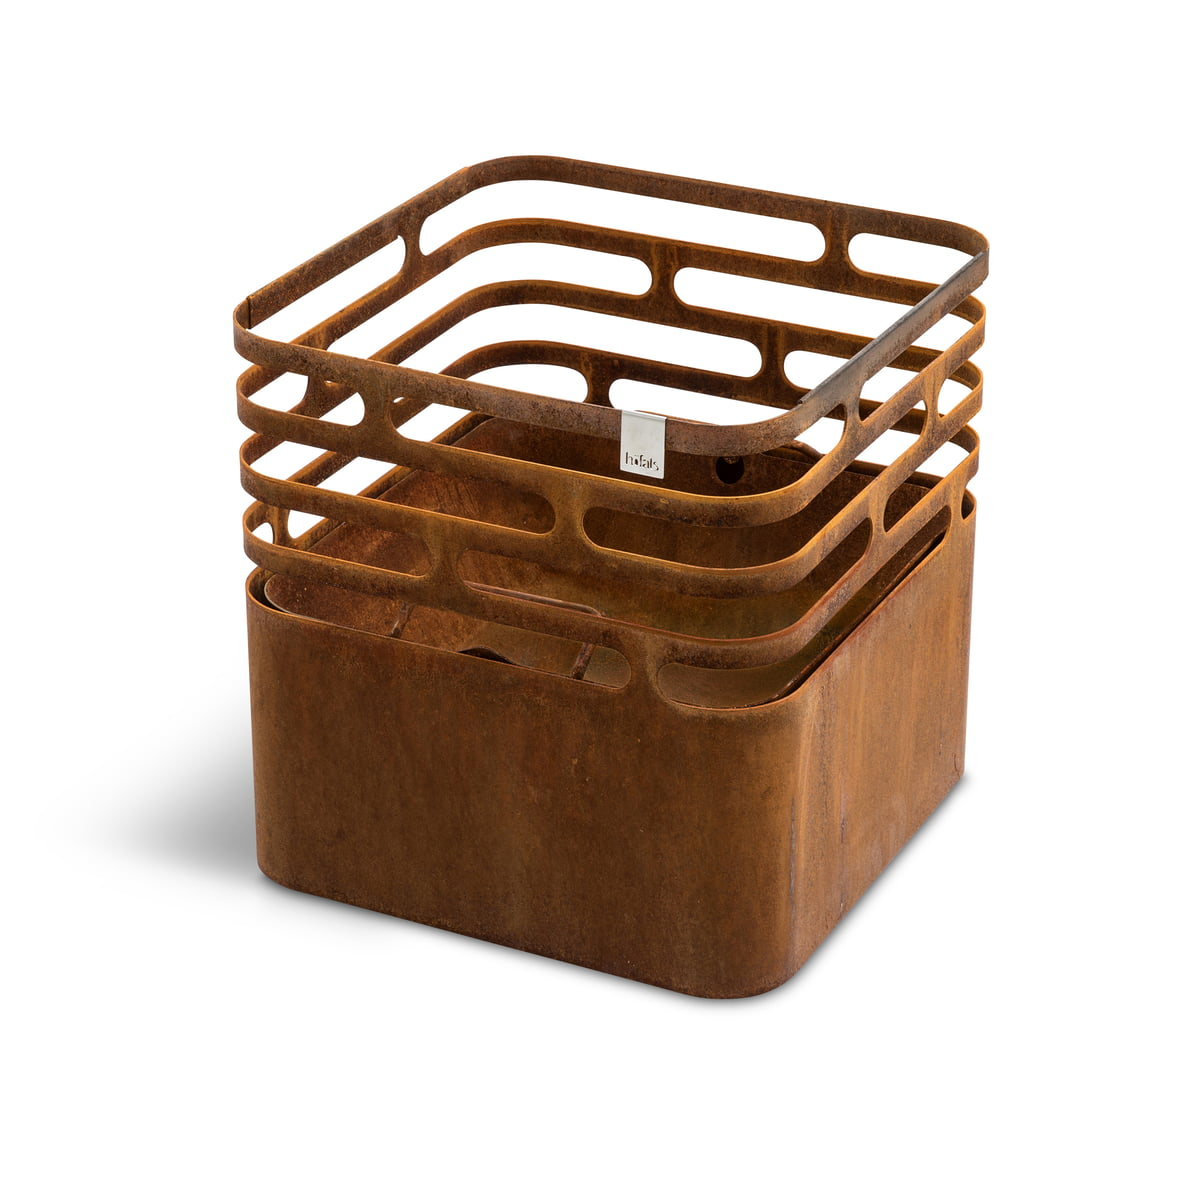 Brasero grill tabouret table d'appoint rouille